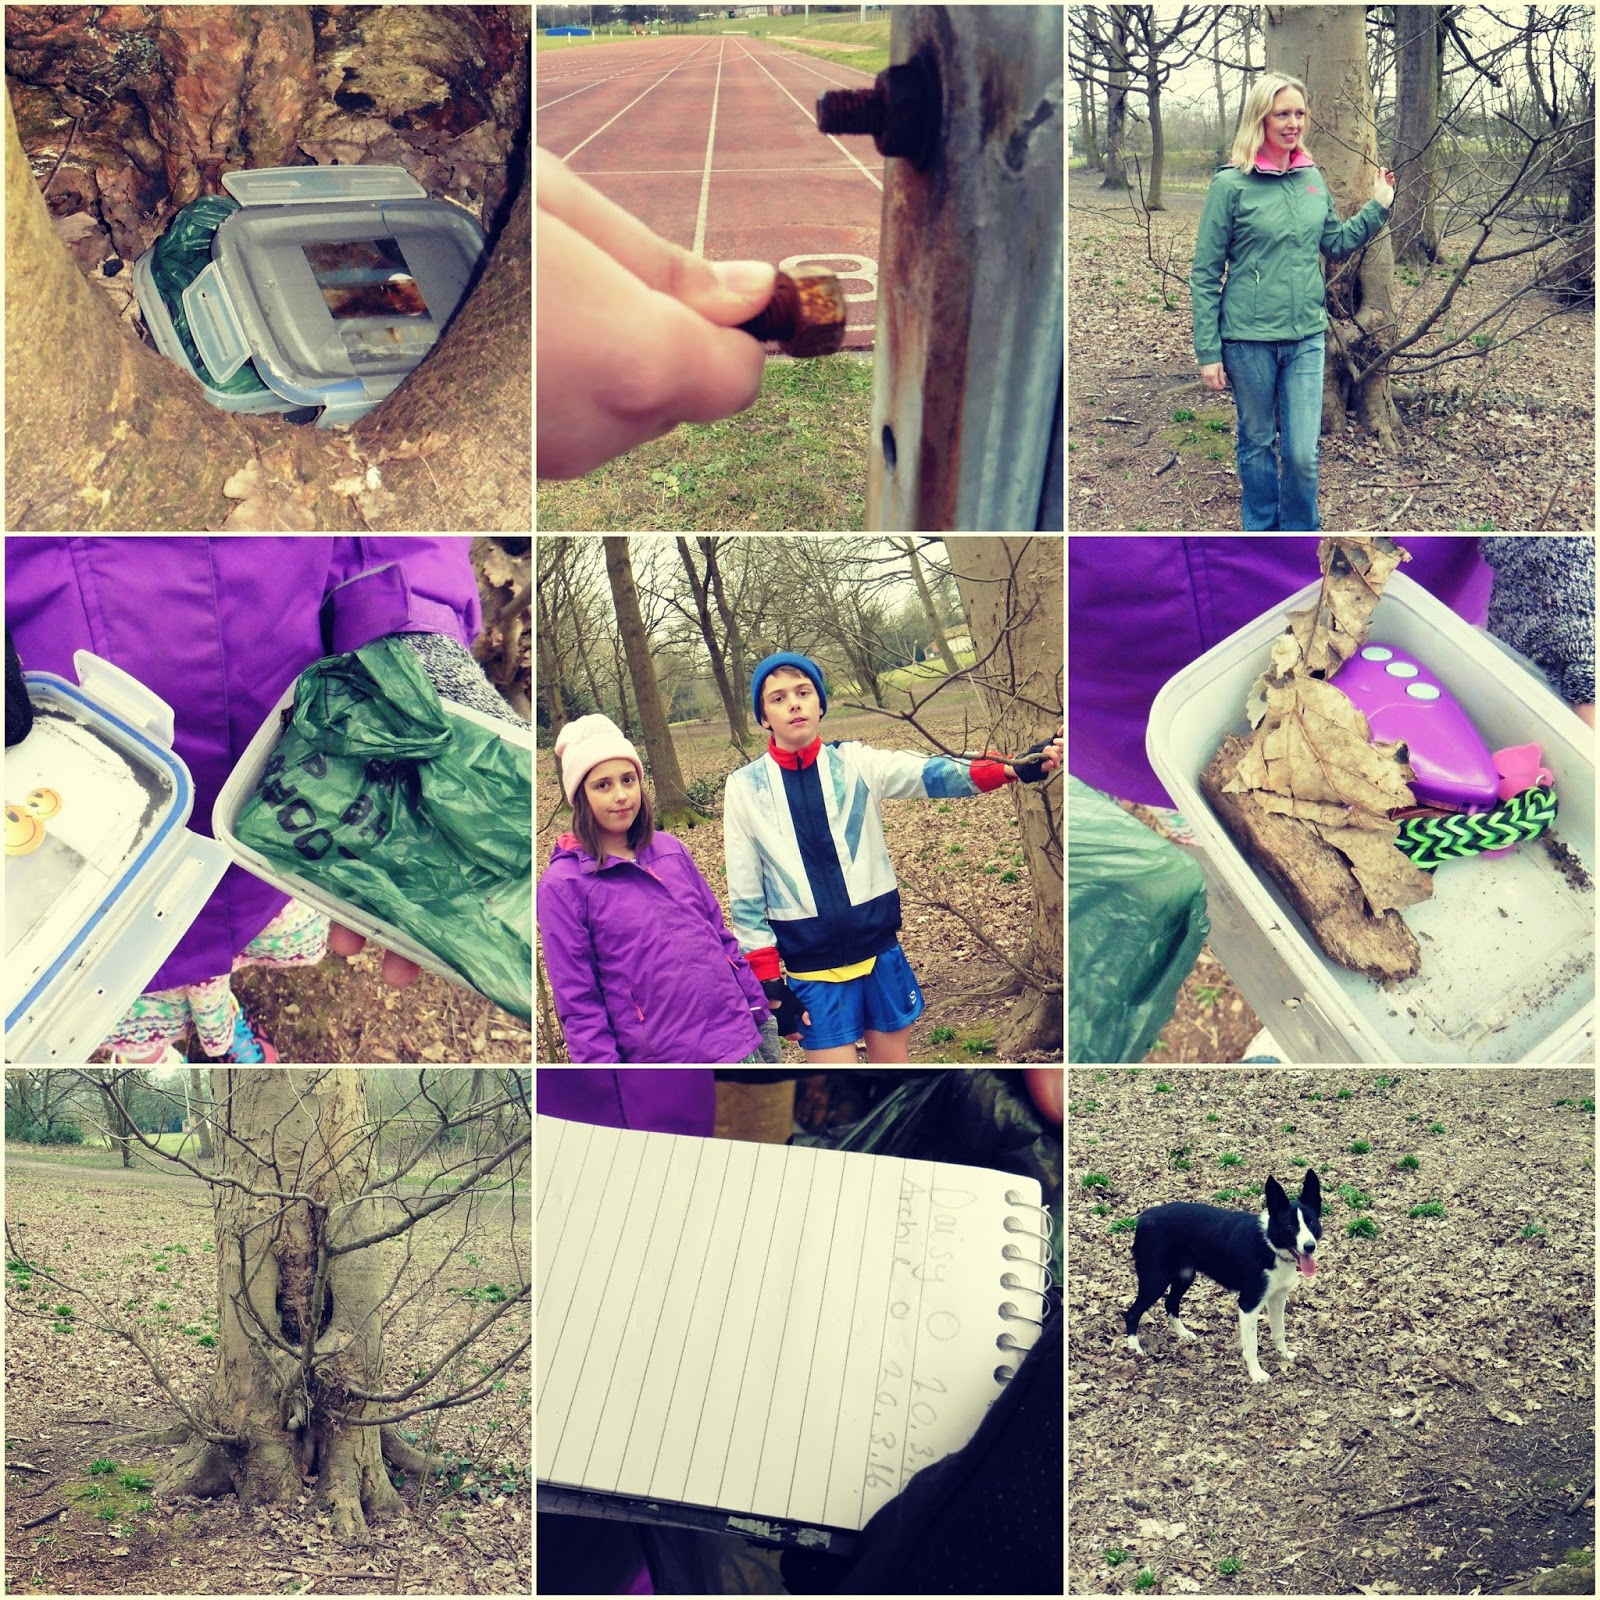 Fun Geocaching: Have You Heard Of This Before?